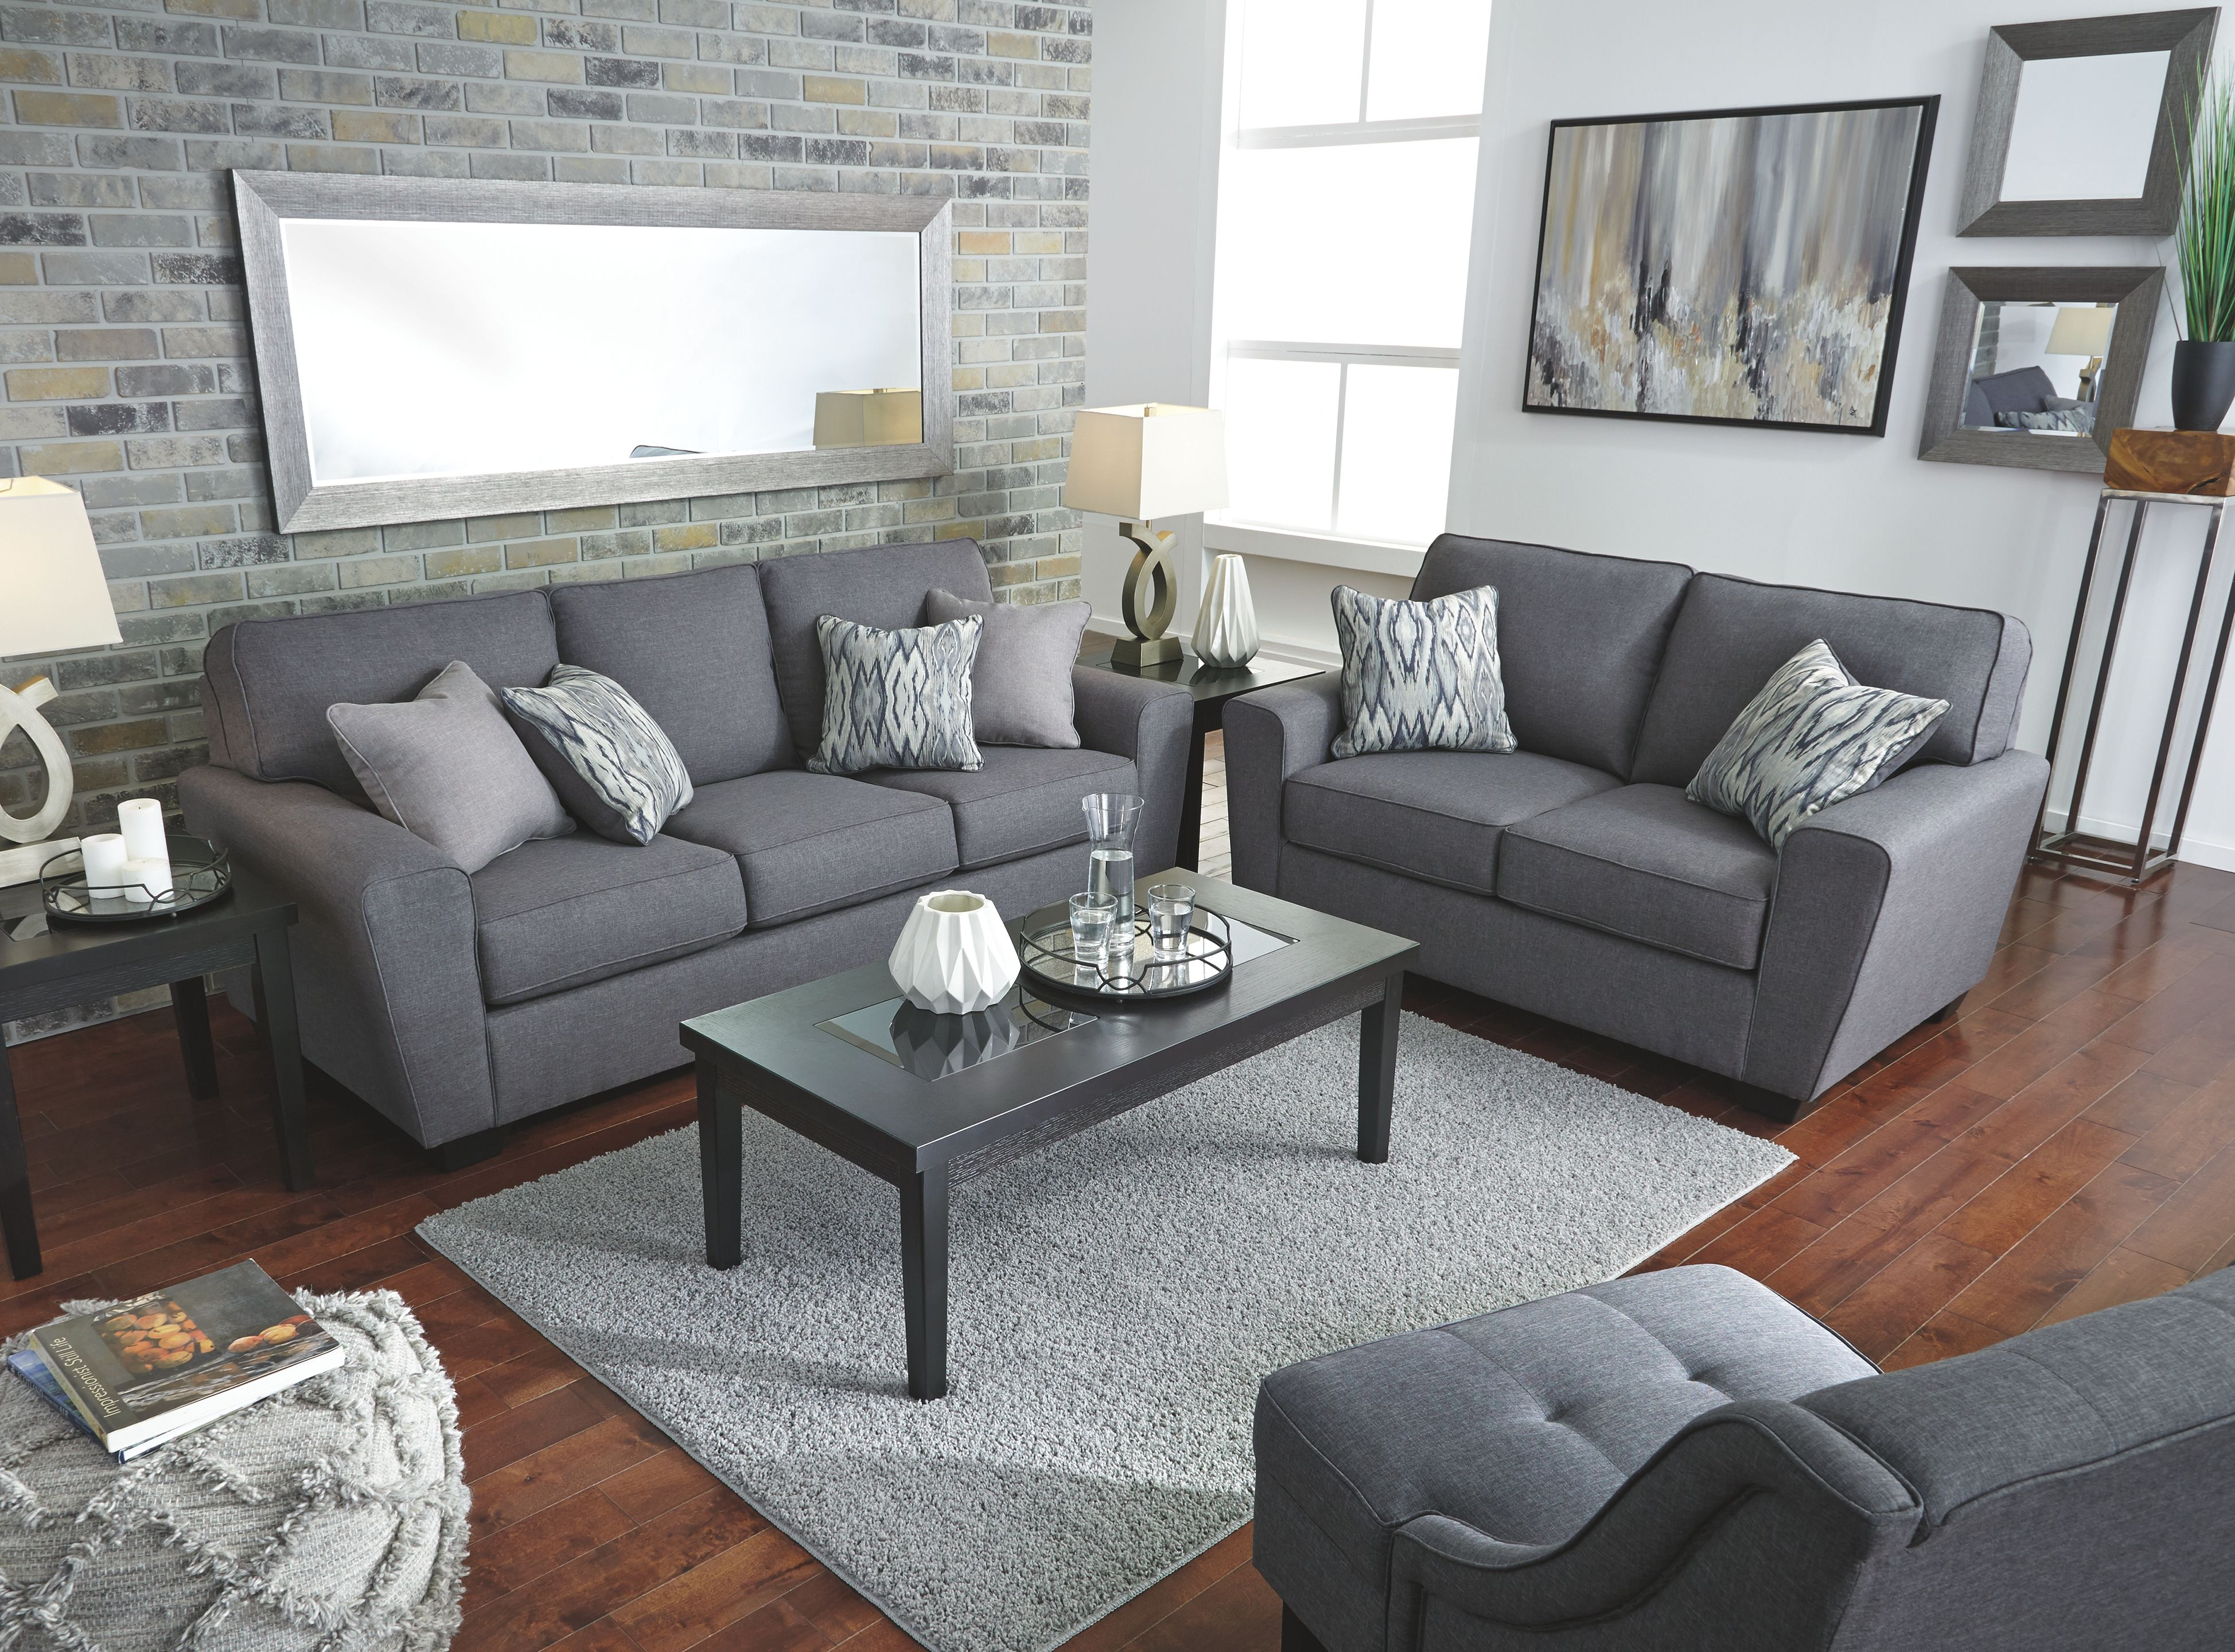 Best Calion Accent Chair Couches Living Room Living Room 400 x 300